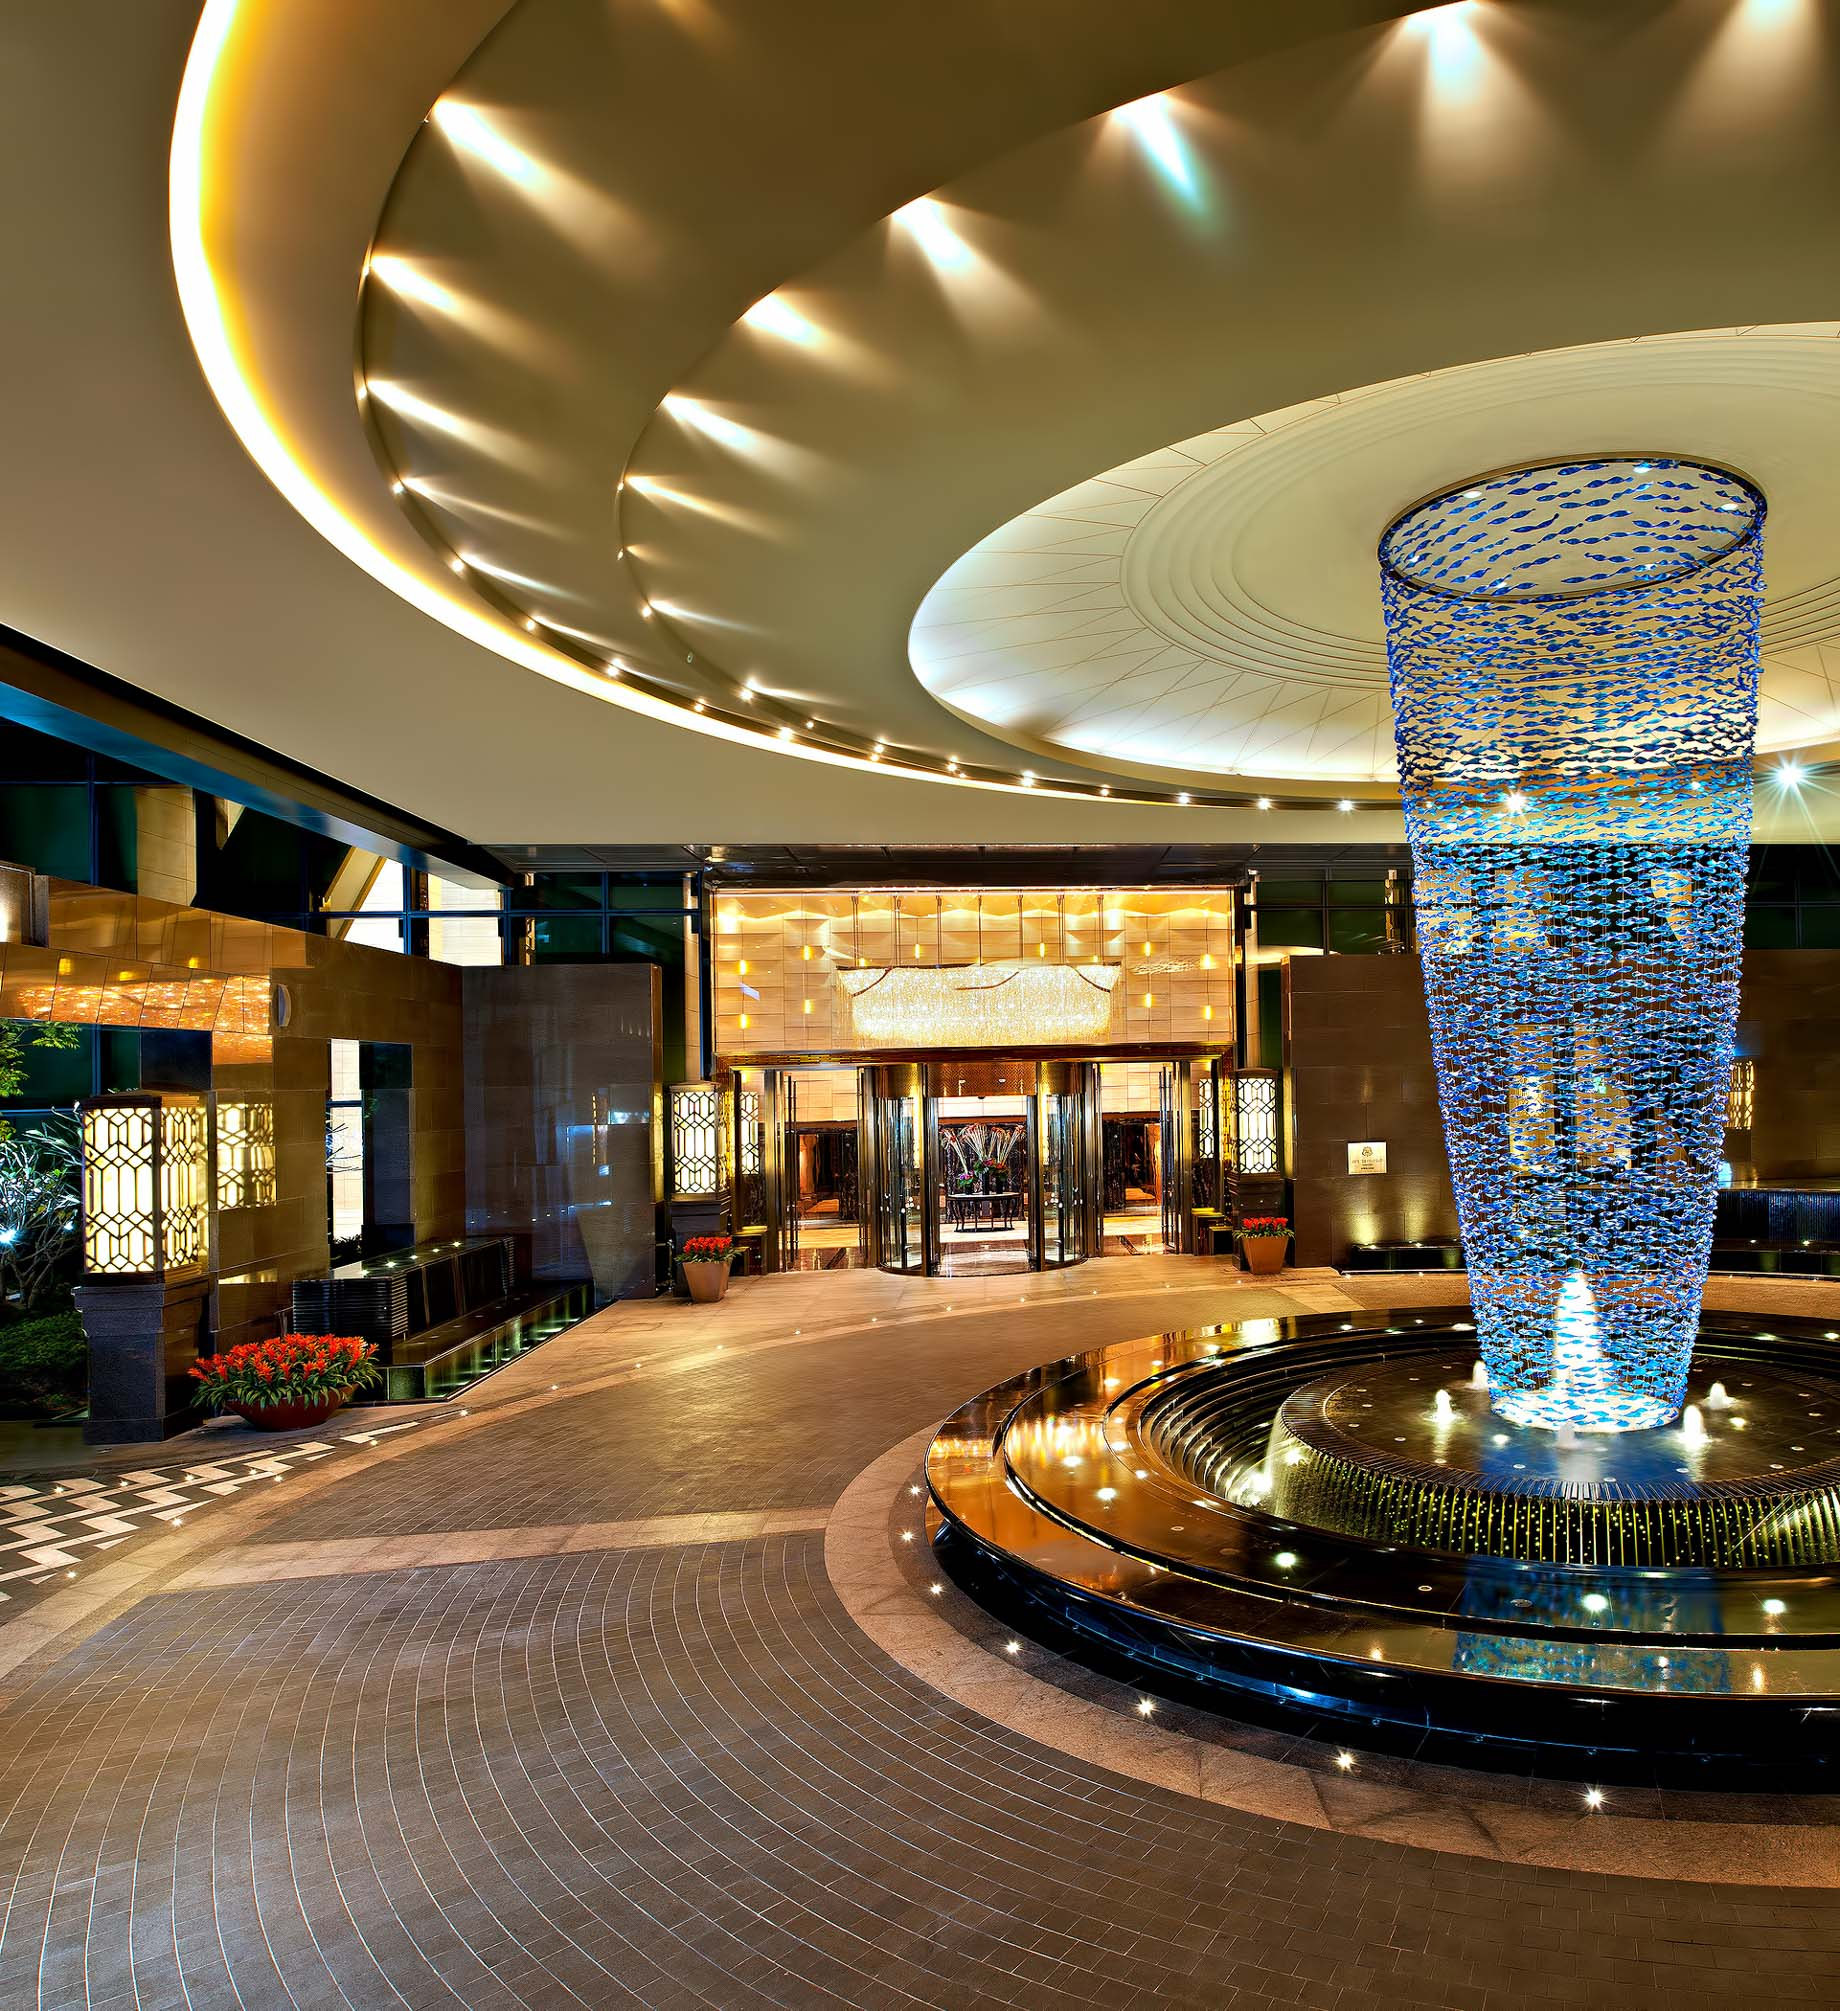 The St. Regis Shenzhen Luxury Hotel – Shenzhen, China – Entrance